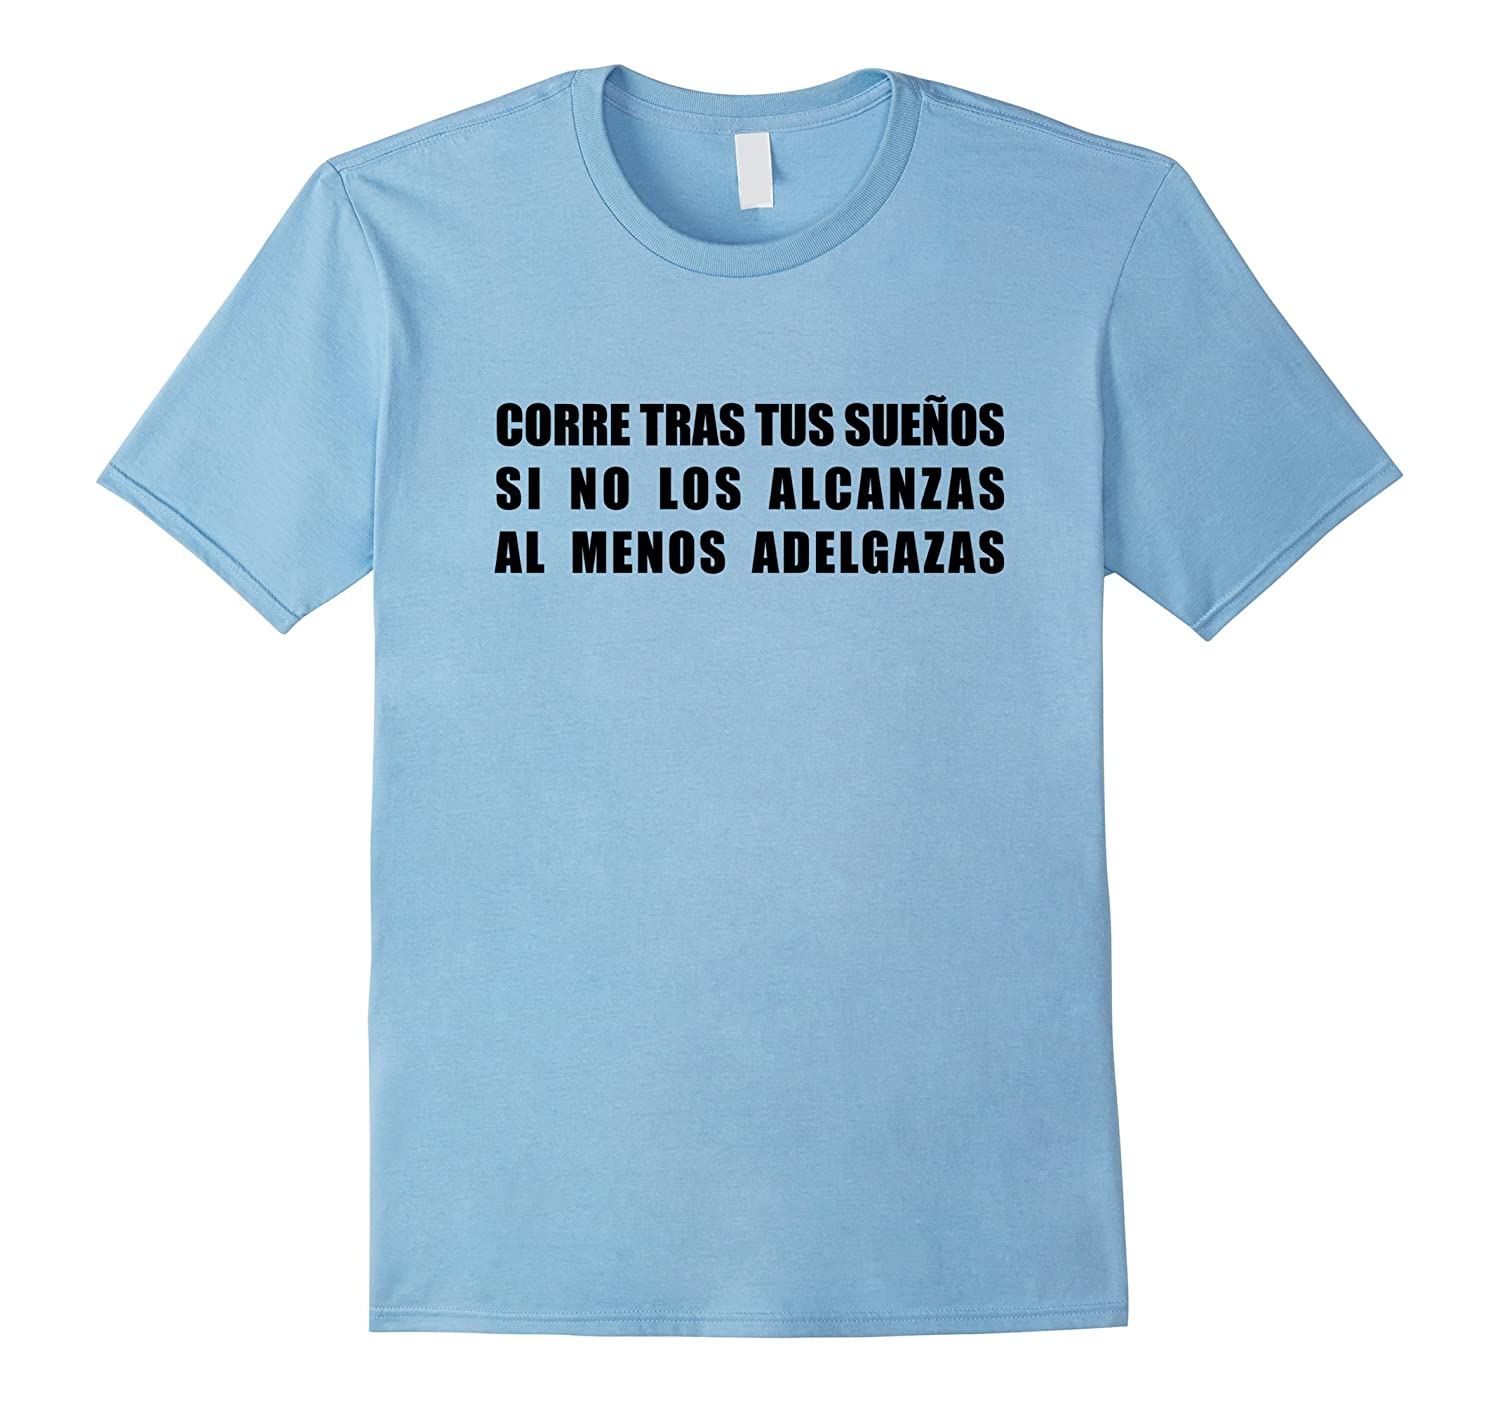 Amazon.com: Funny & Sarcastic Spanish Saying T-shirts for Men & Women: Clothing